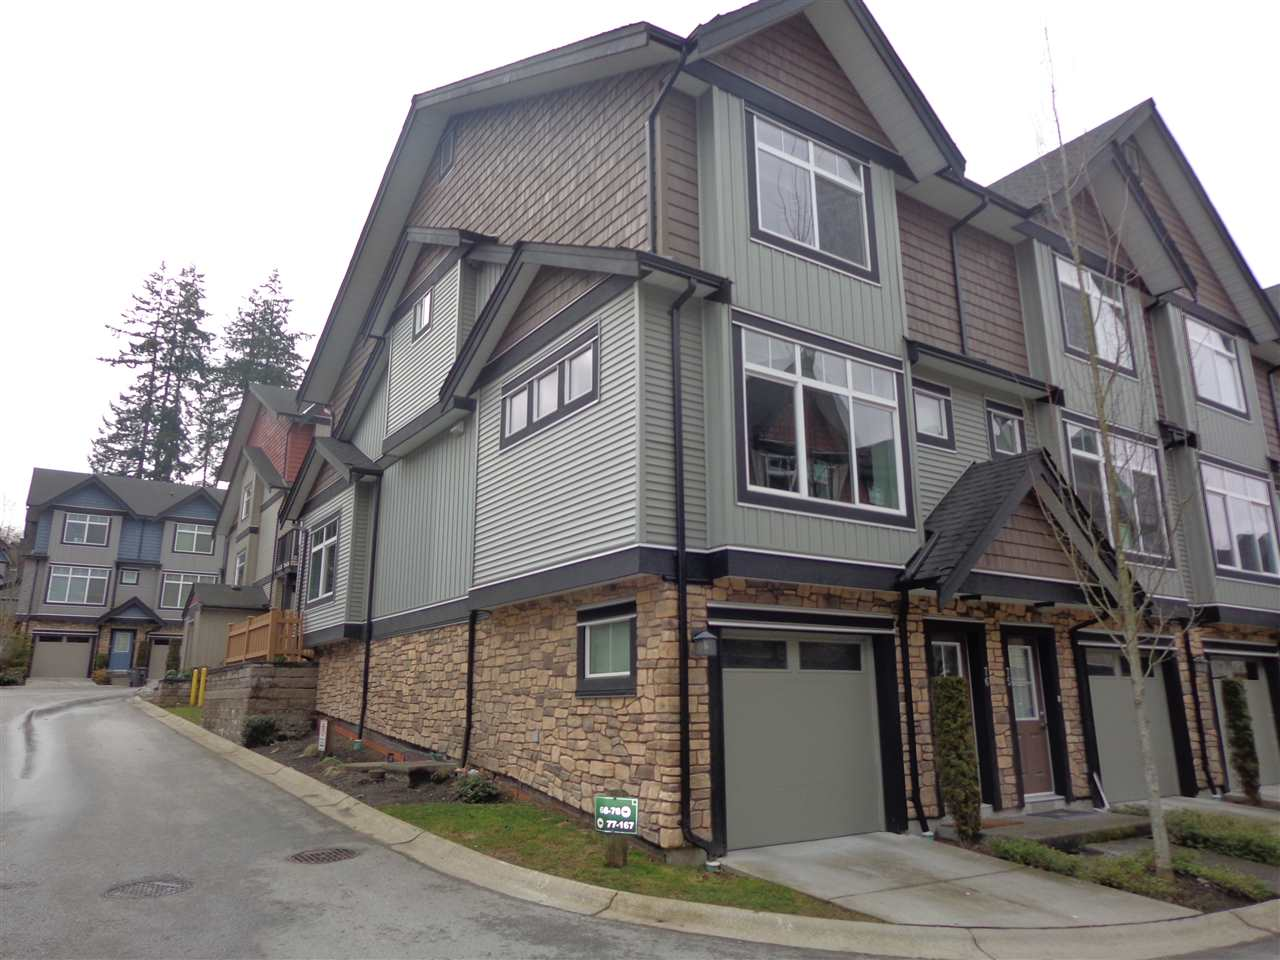 Main Photo: 76 6299 144 STREET in Surrey: Sullivan Station Townhouse for sale : MLS® # R2141156